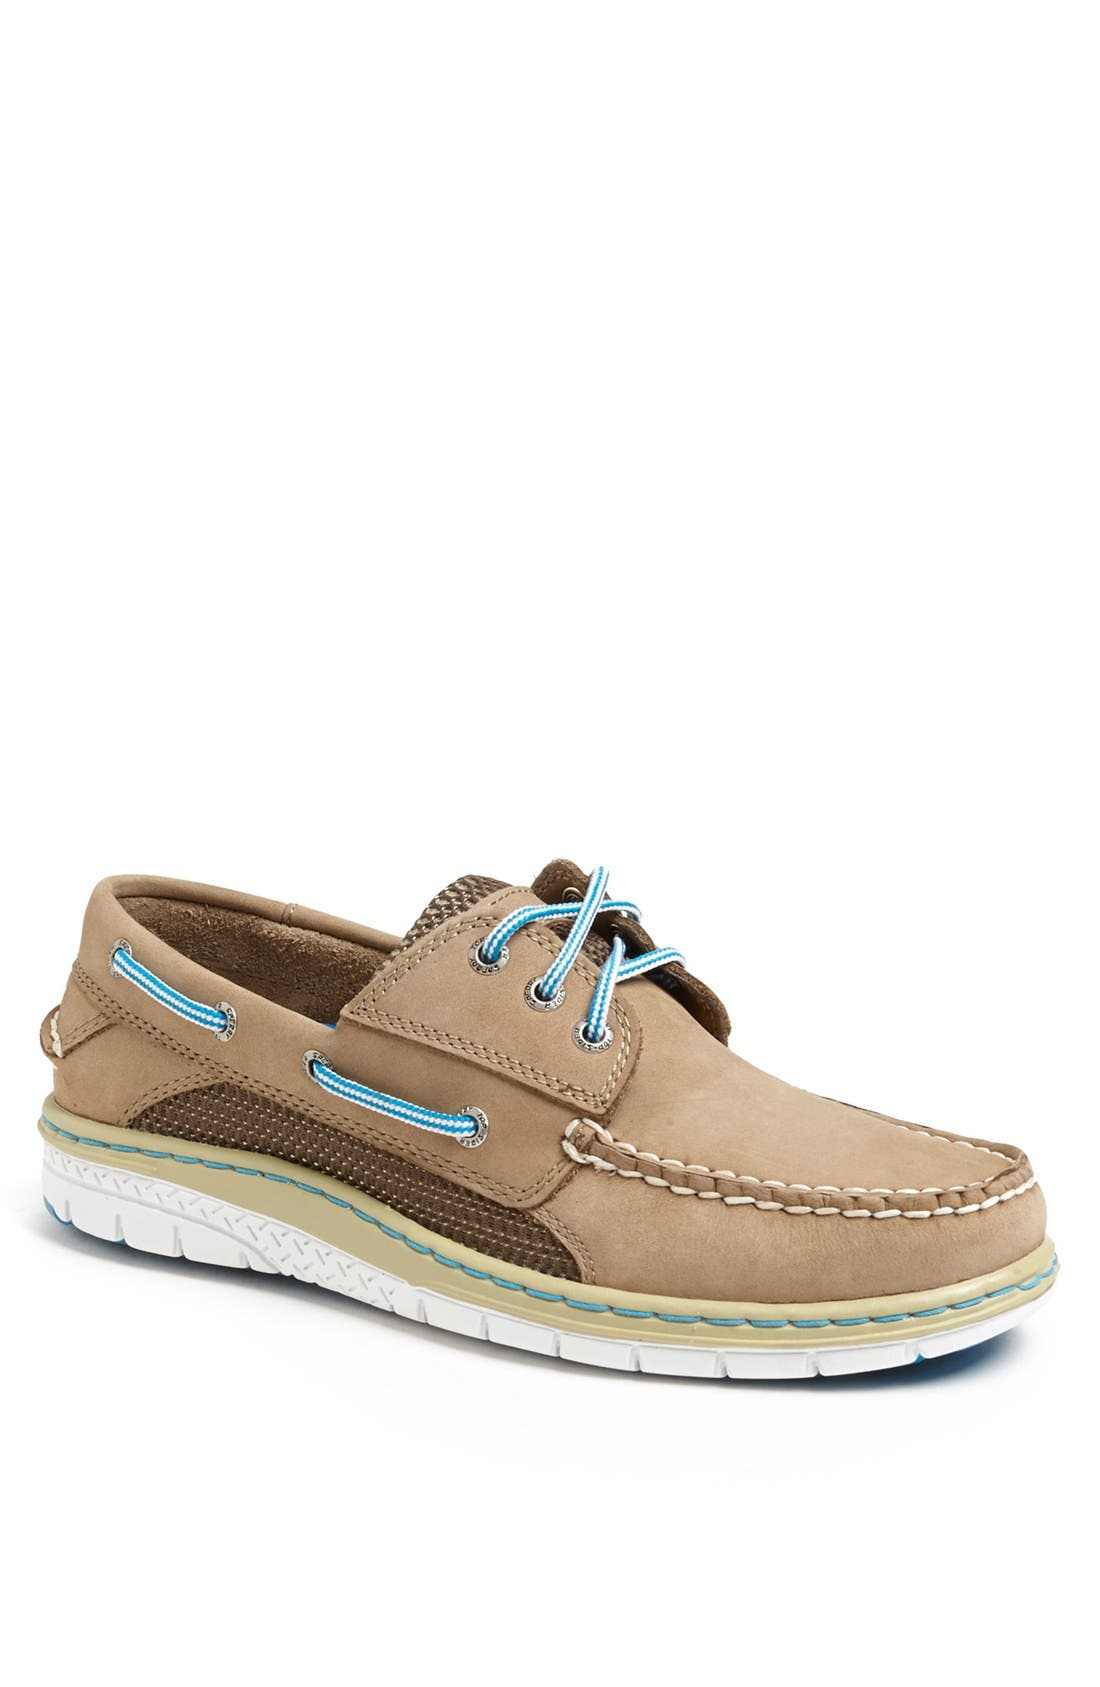 'Billfish Ultralite' Boat Shoe,                             Main thumbnail 12, color,